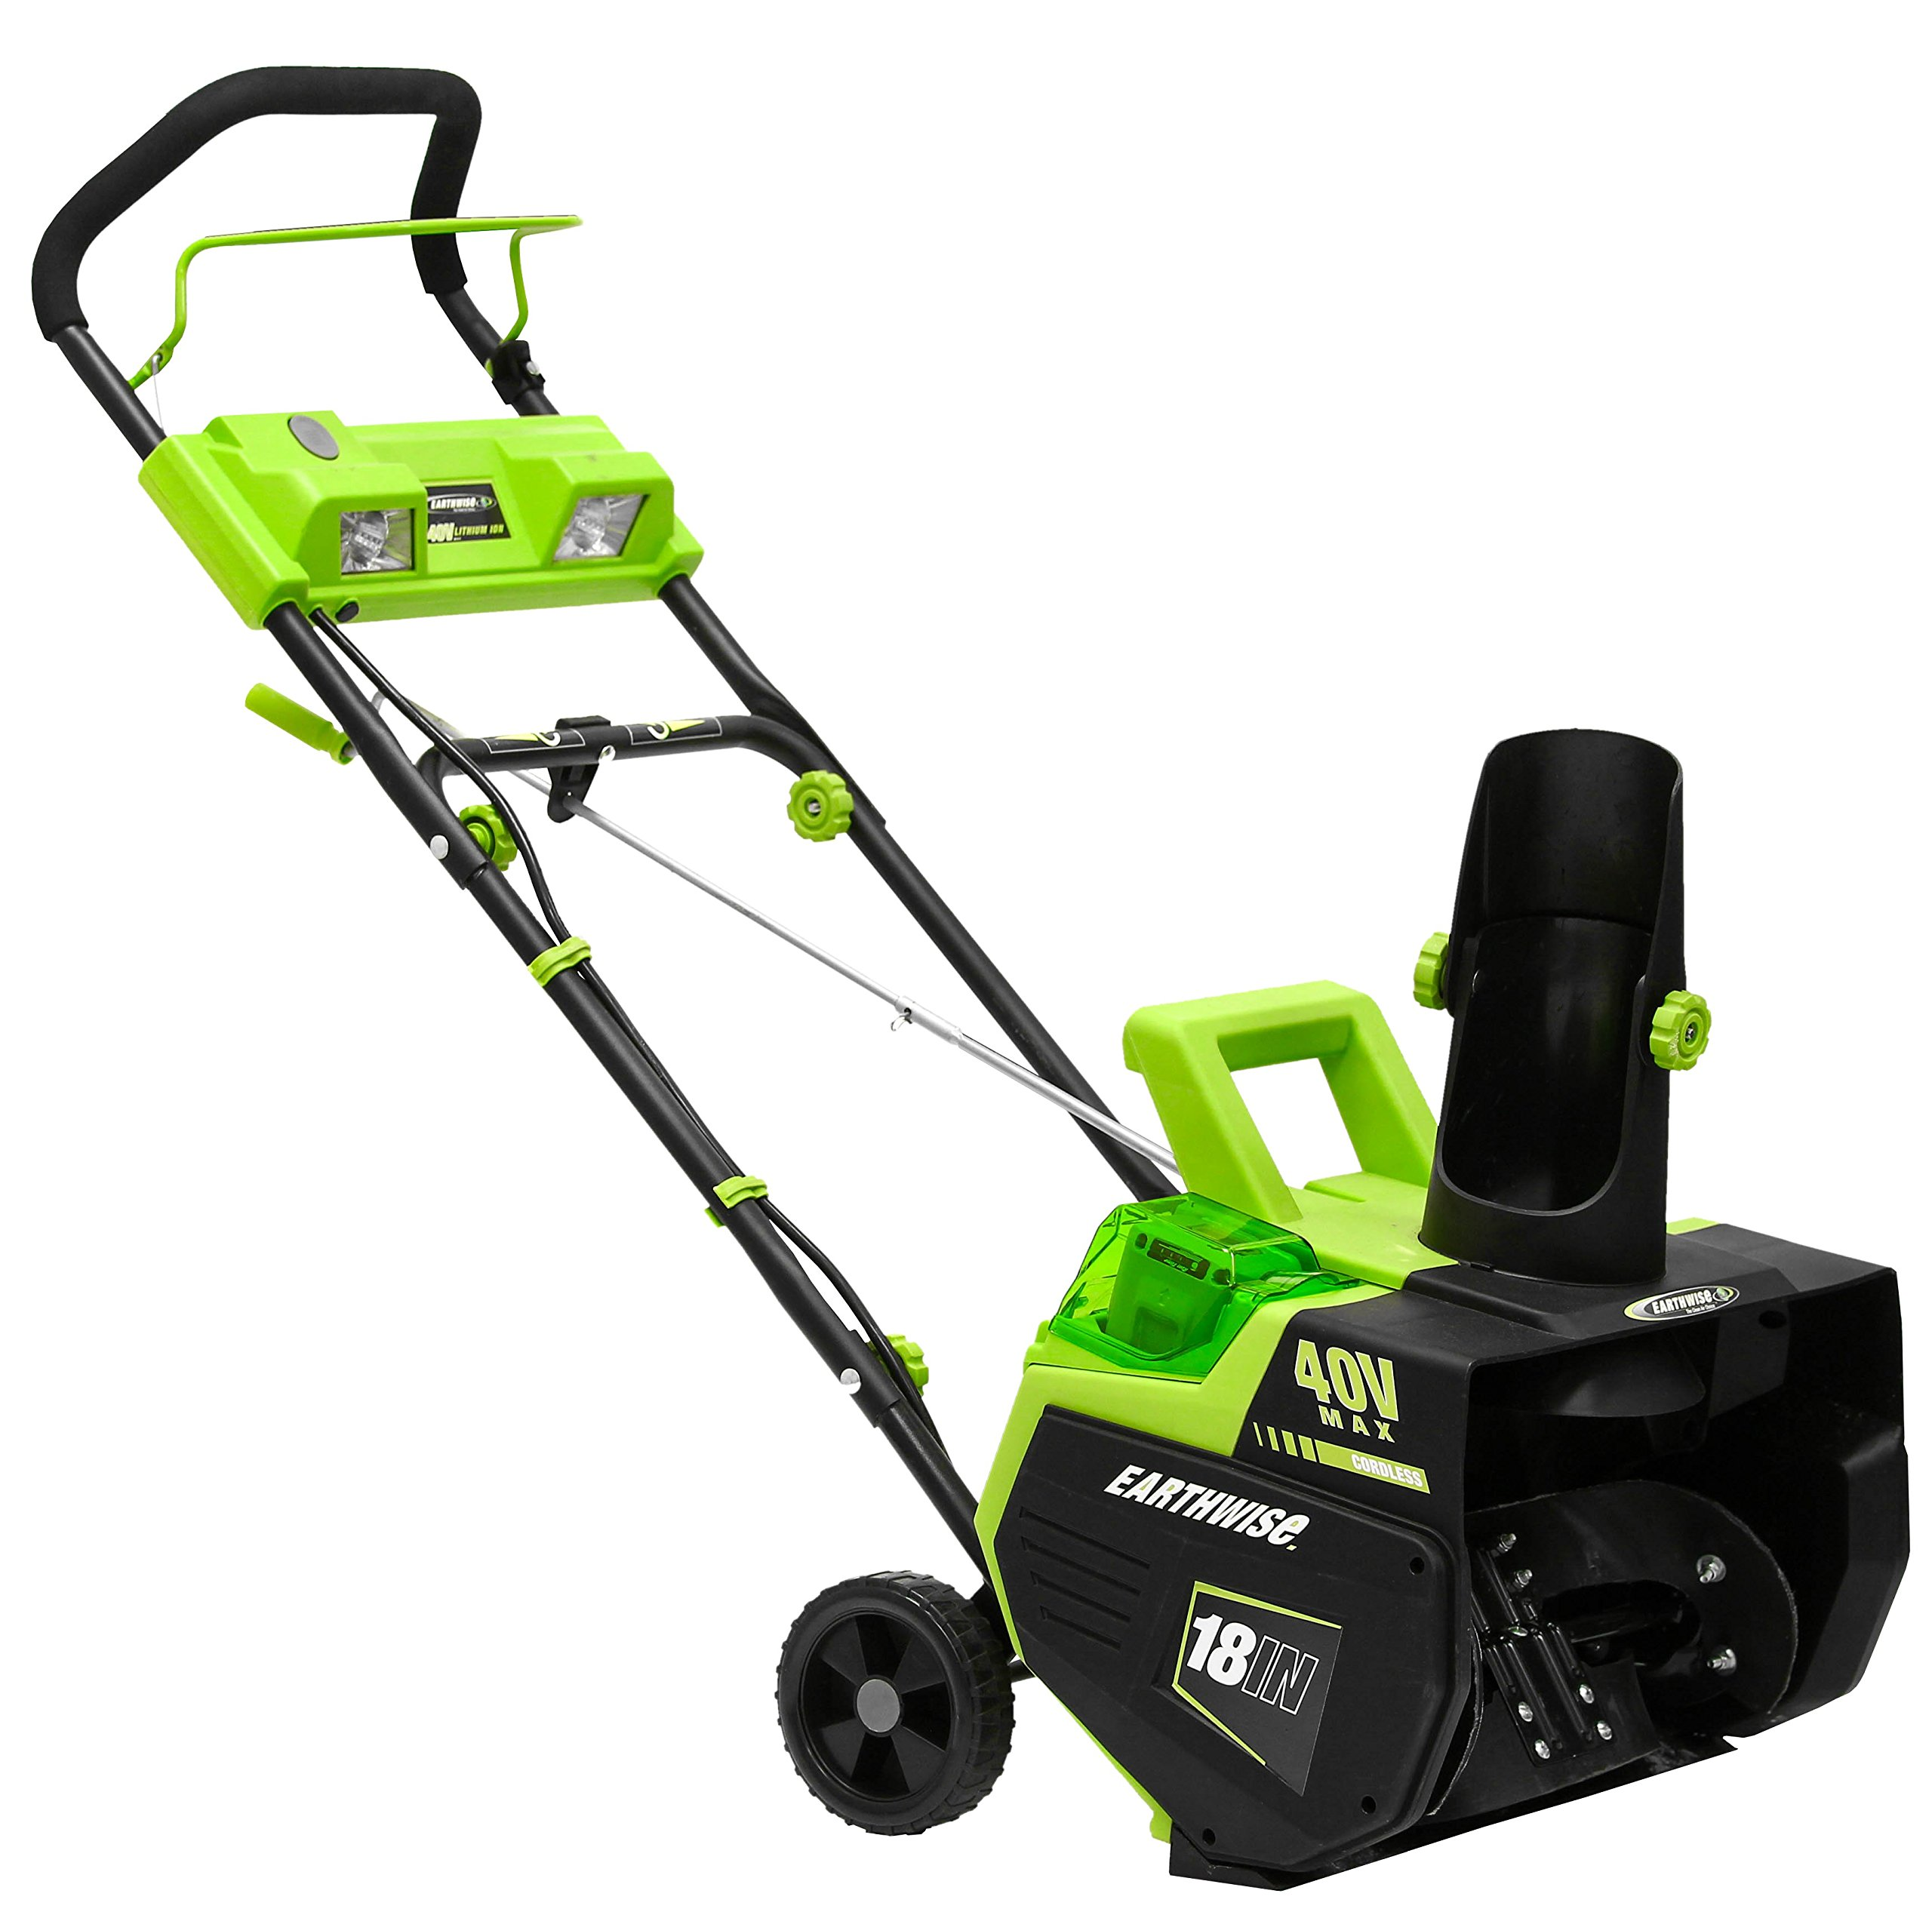 Earthwise SN74018 Cordless Electric 40-Volt 4Ah Brushless Motor, 18-Inch Snow Thrower, 500lbs/Minute, With LED spotlight (Battery and Charger Included) by Earthwise